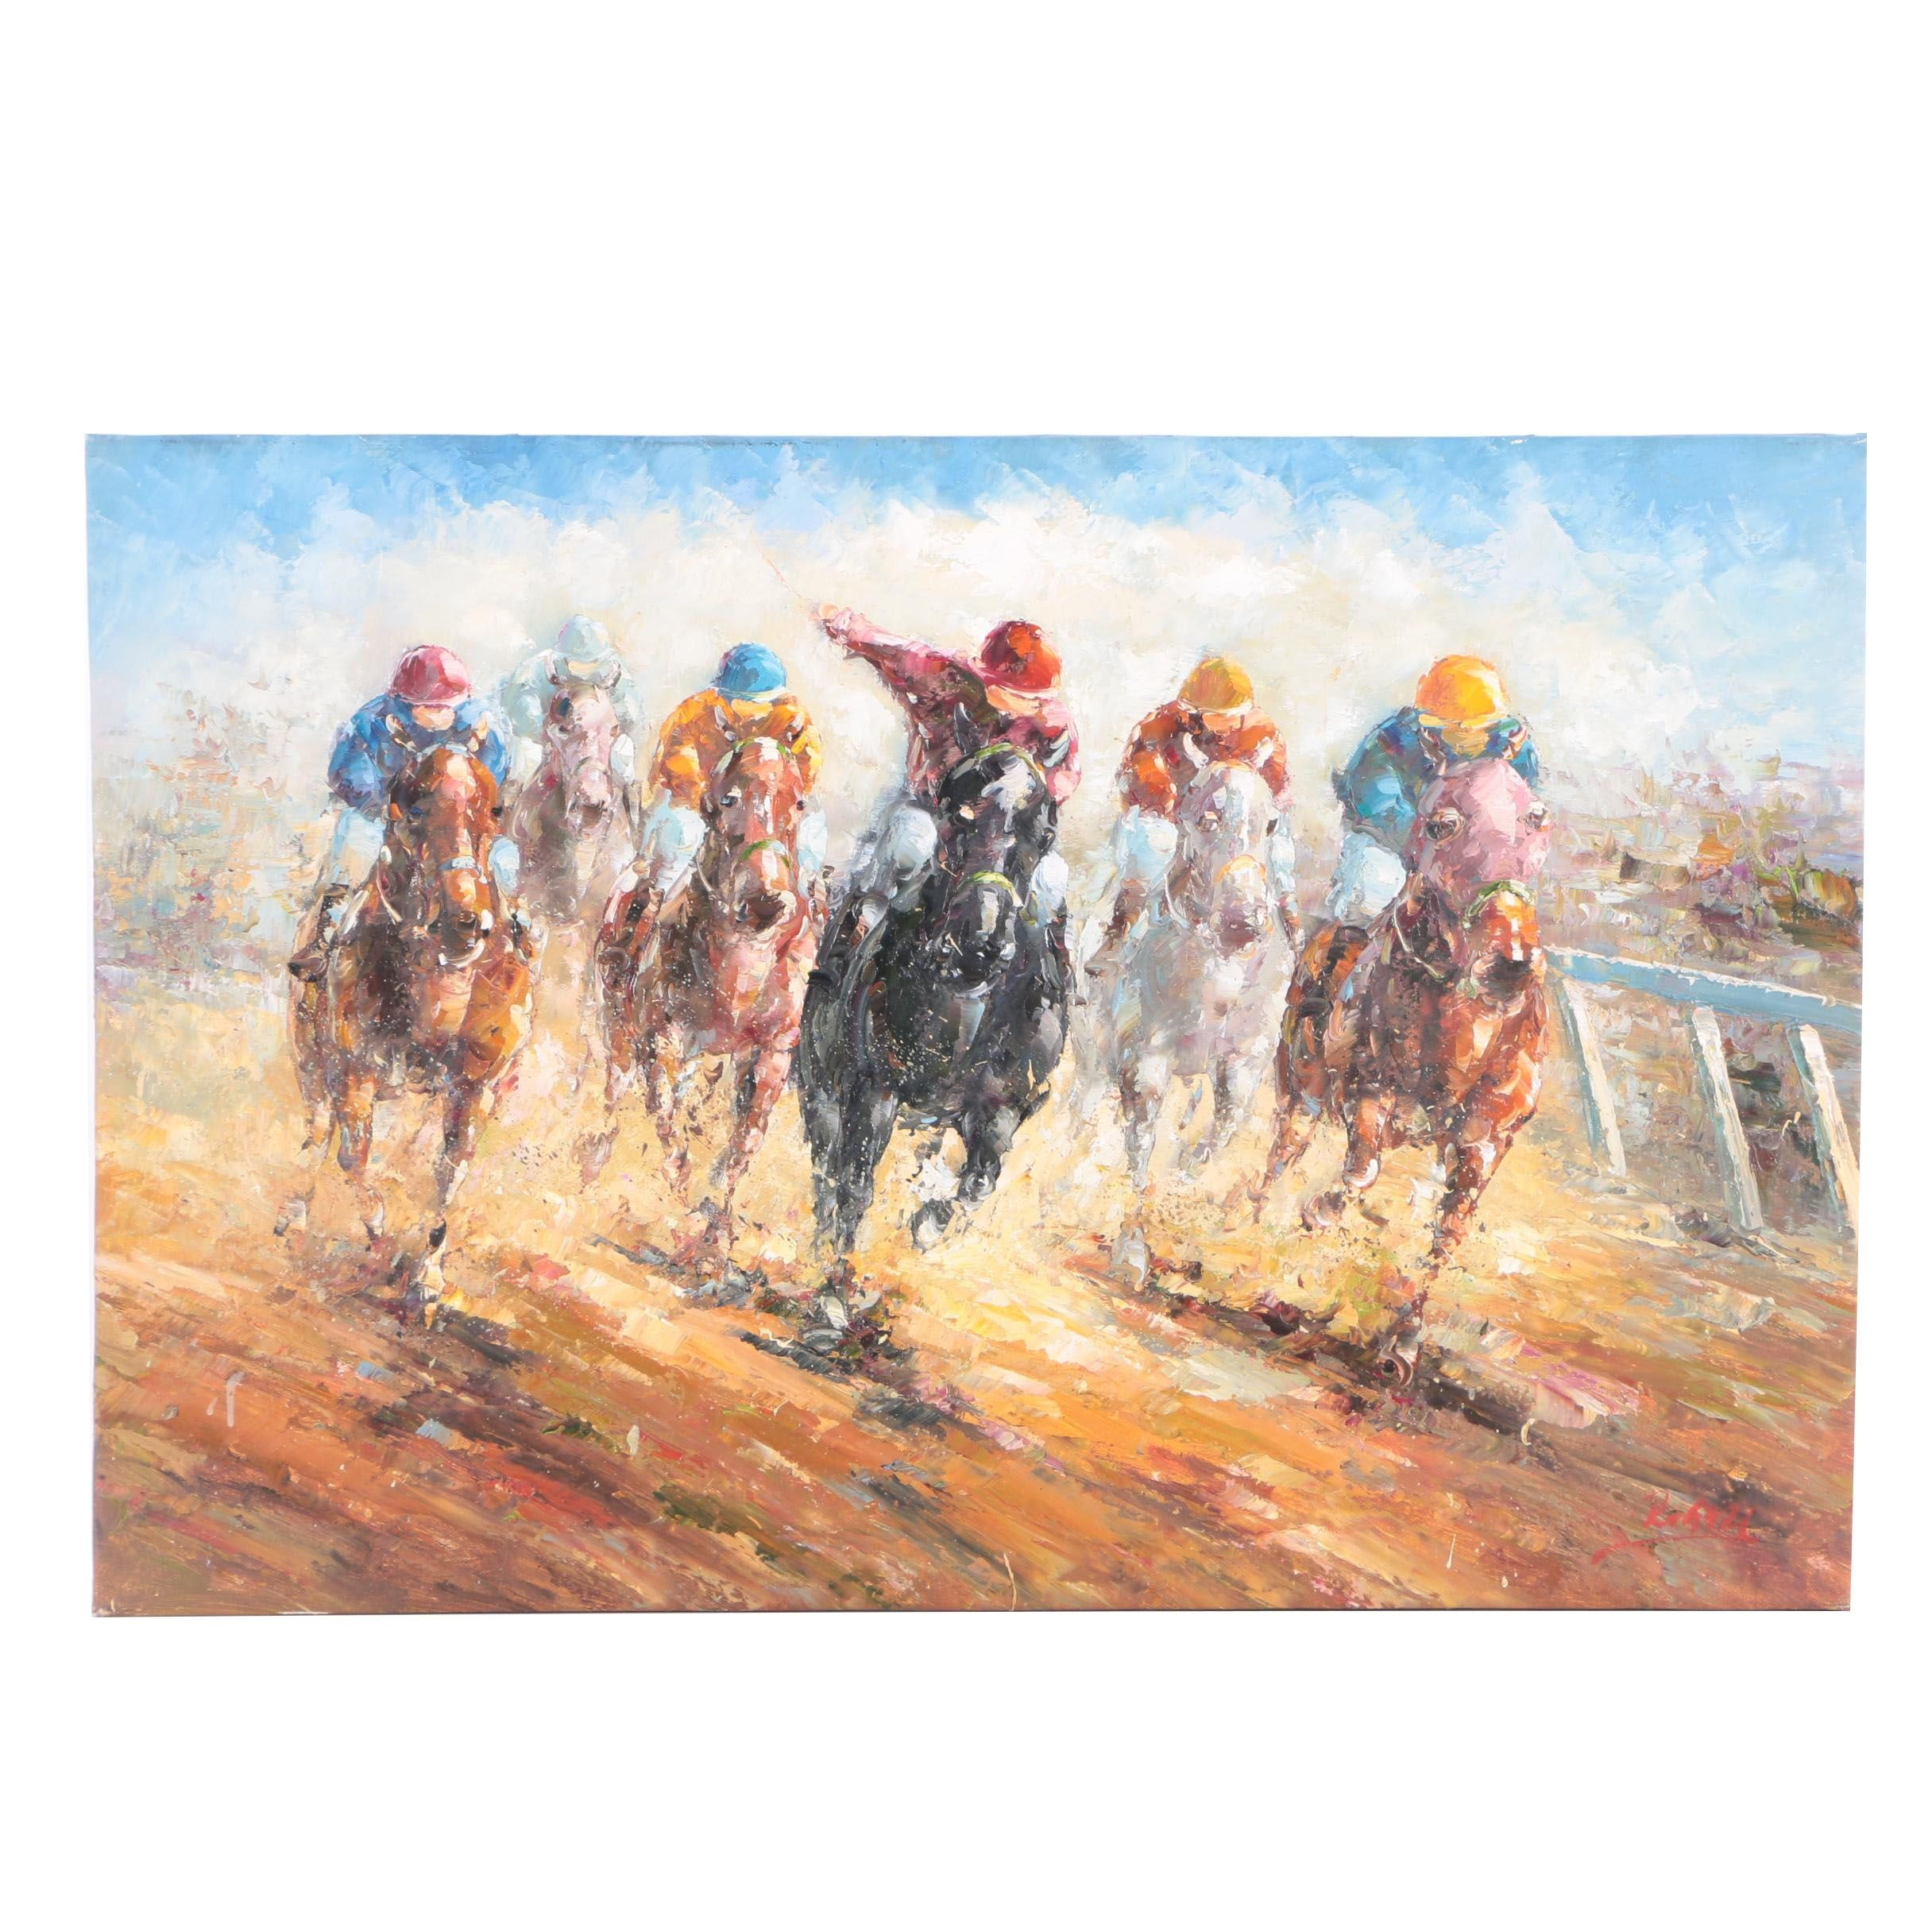 Oil Painting on Canvas of a Horse Race